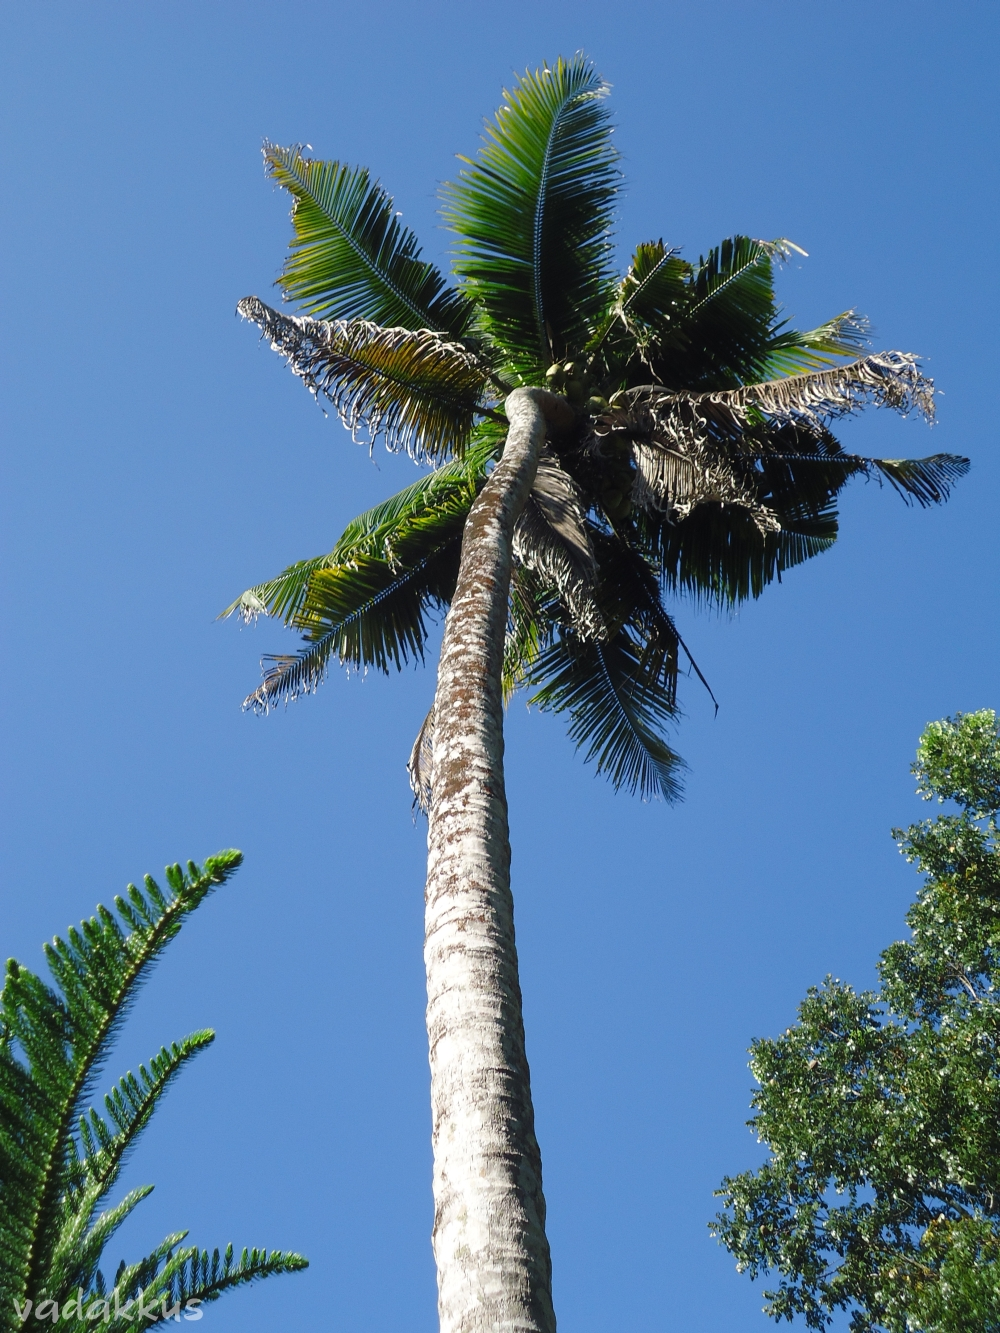 A Coconut tree against a bright blue sky in Kerala